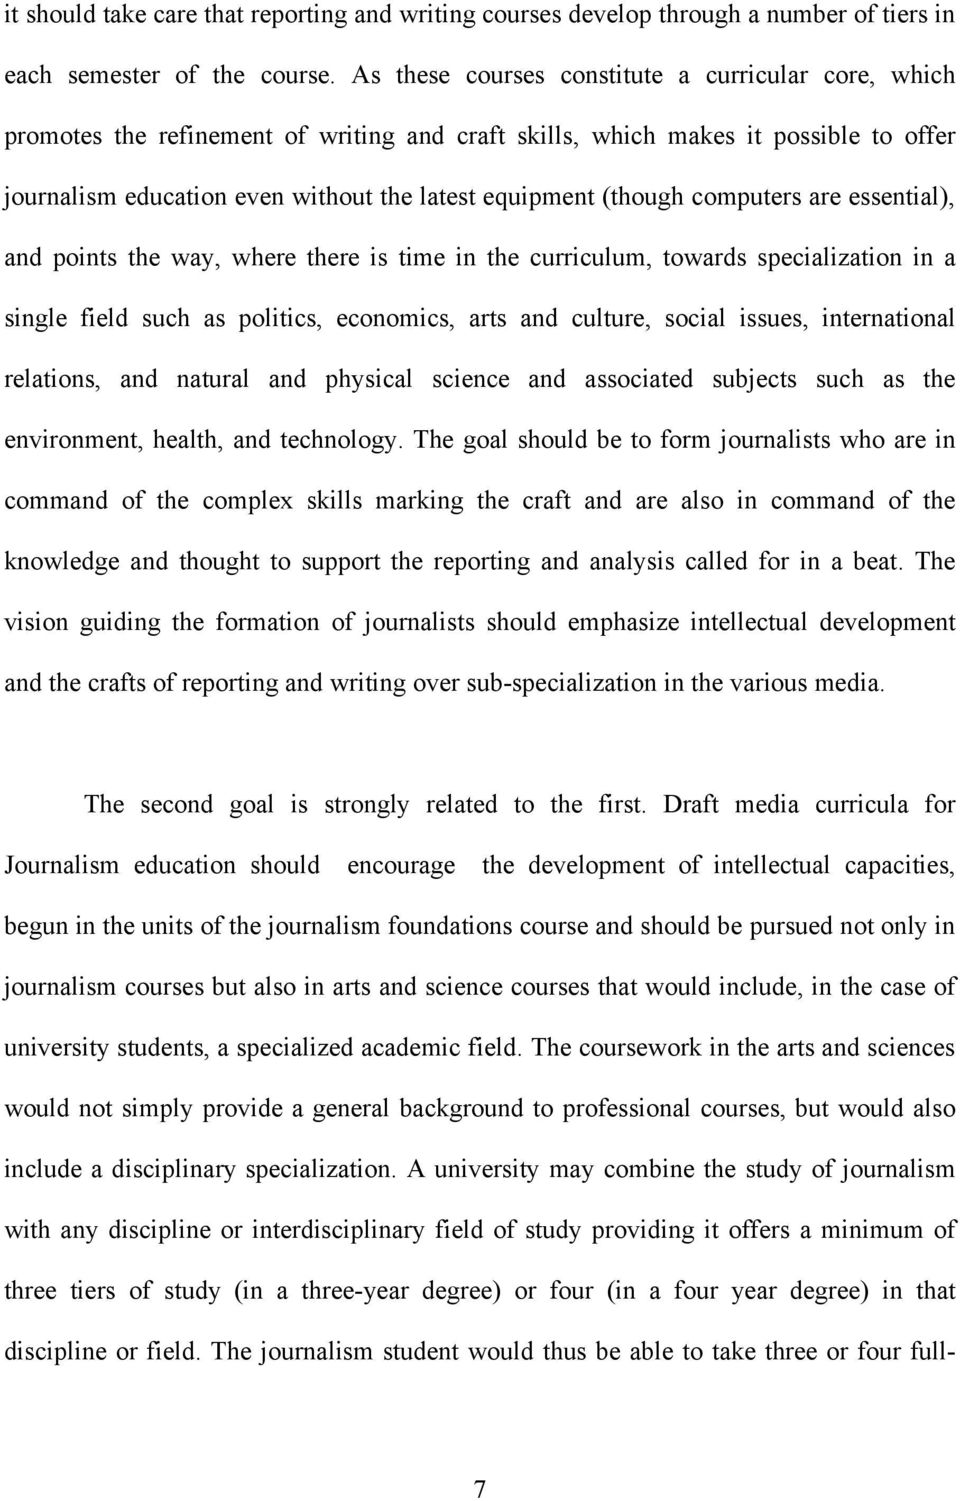 (though computers are essential), and points the way, where there is time in the curriculum, towards specialization in a single field such as politics, economics, arts and culture, social issues,